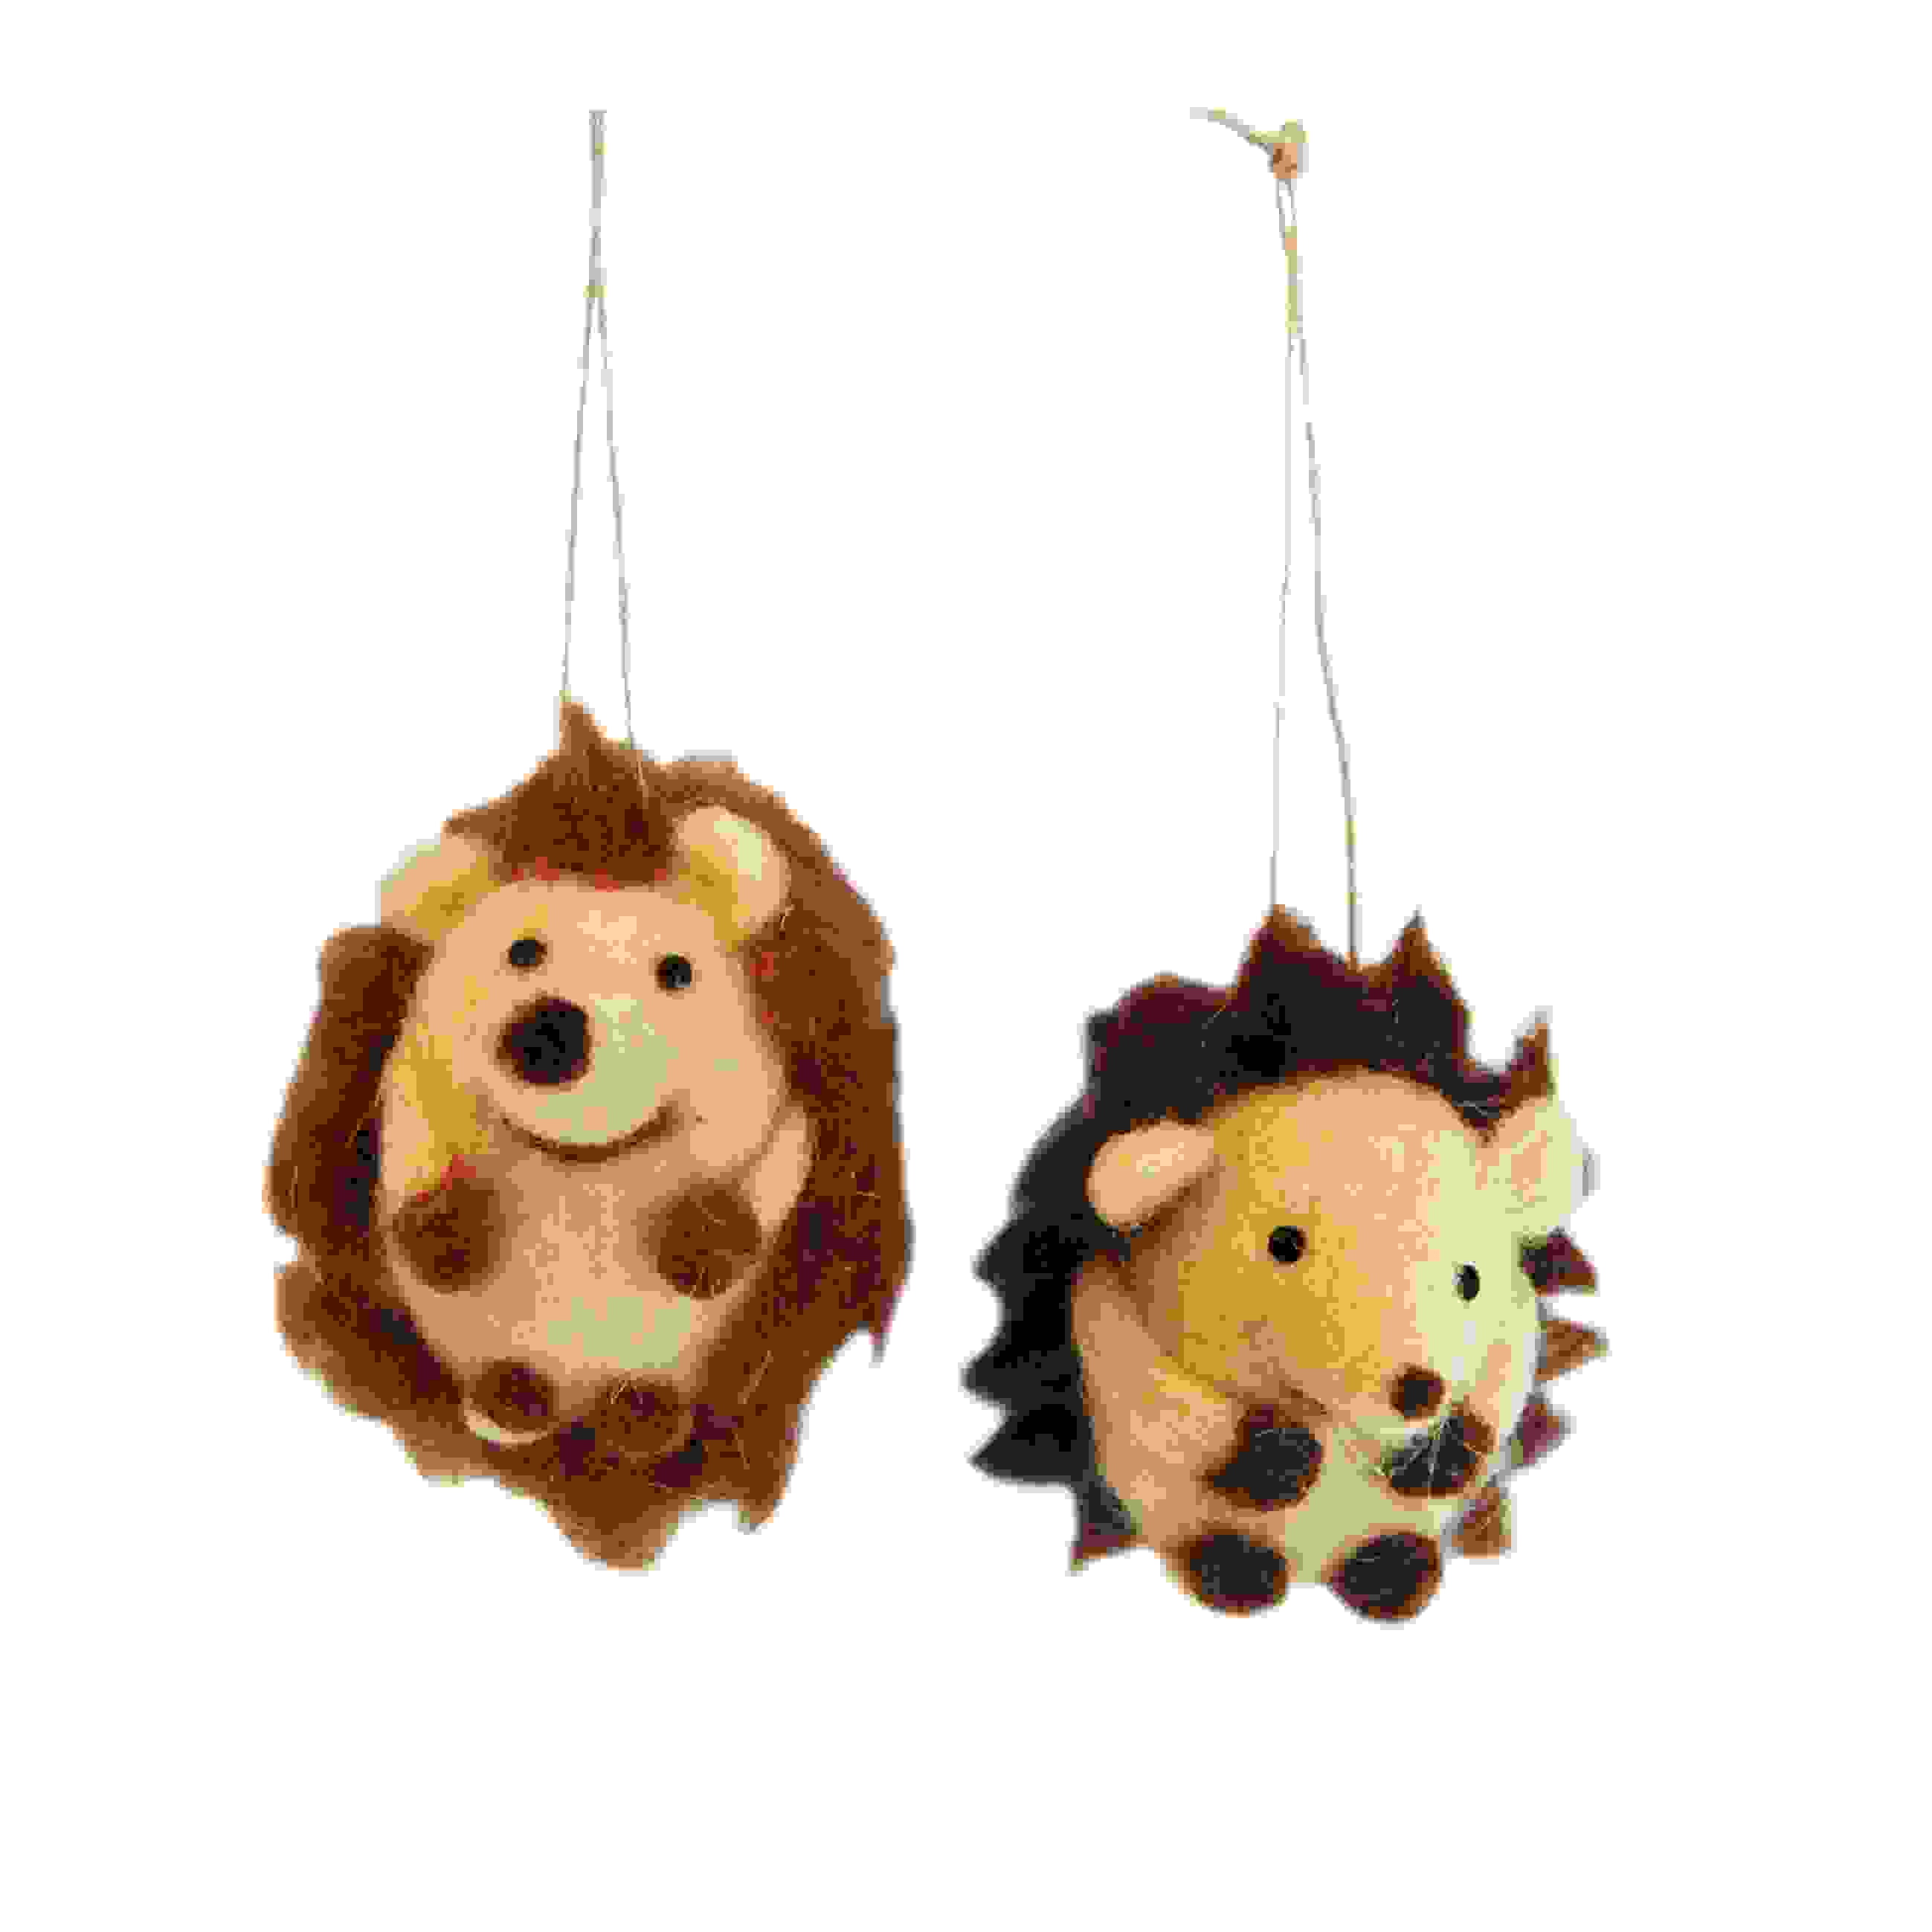 HANG. HEDGEHOGS ASS